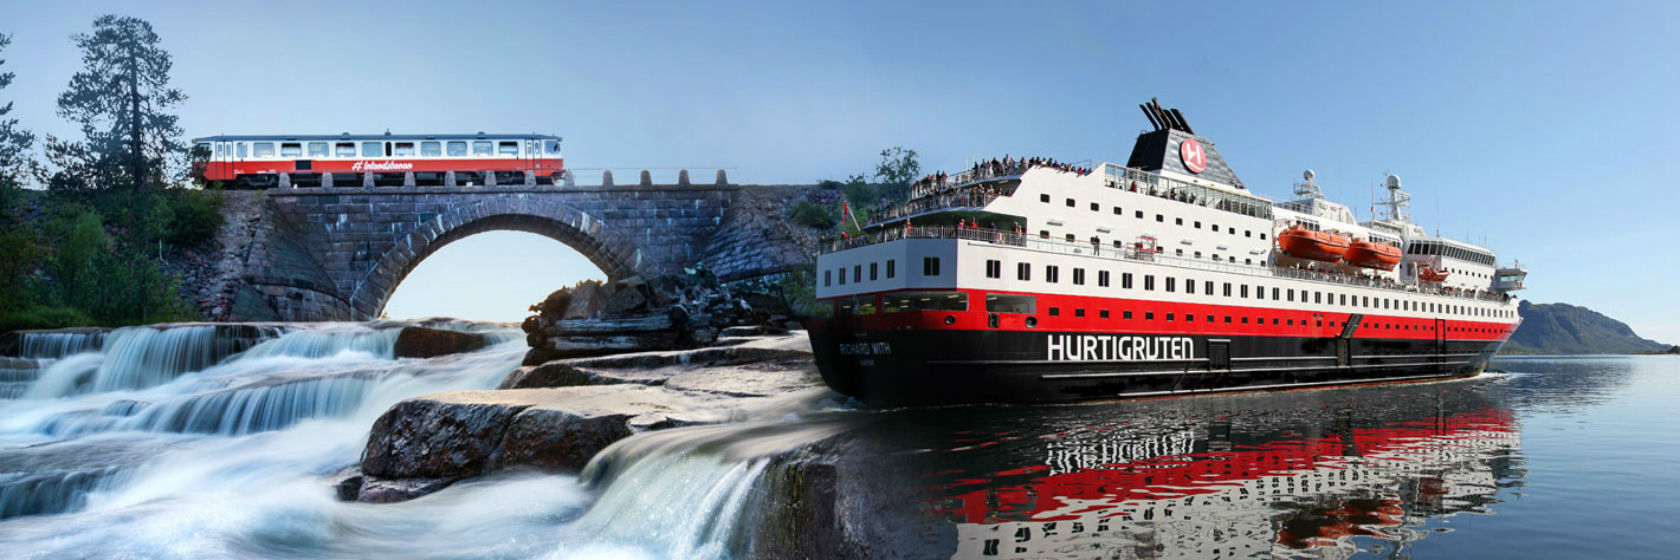 Inlandsbanan & Hurtigruten